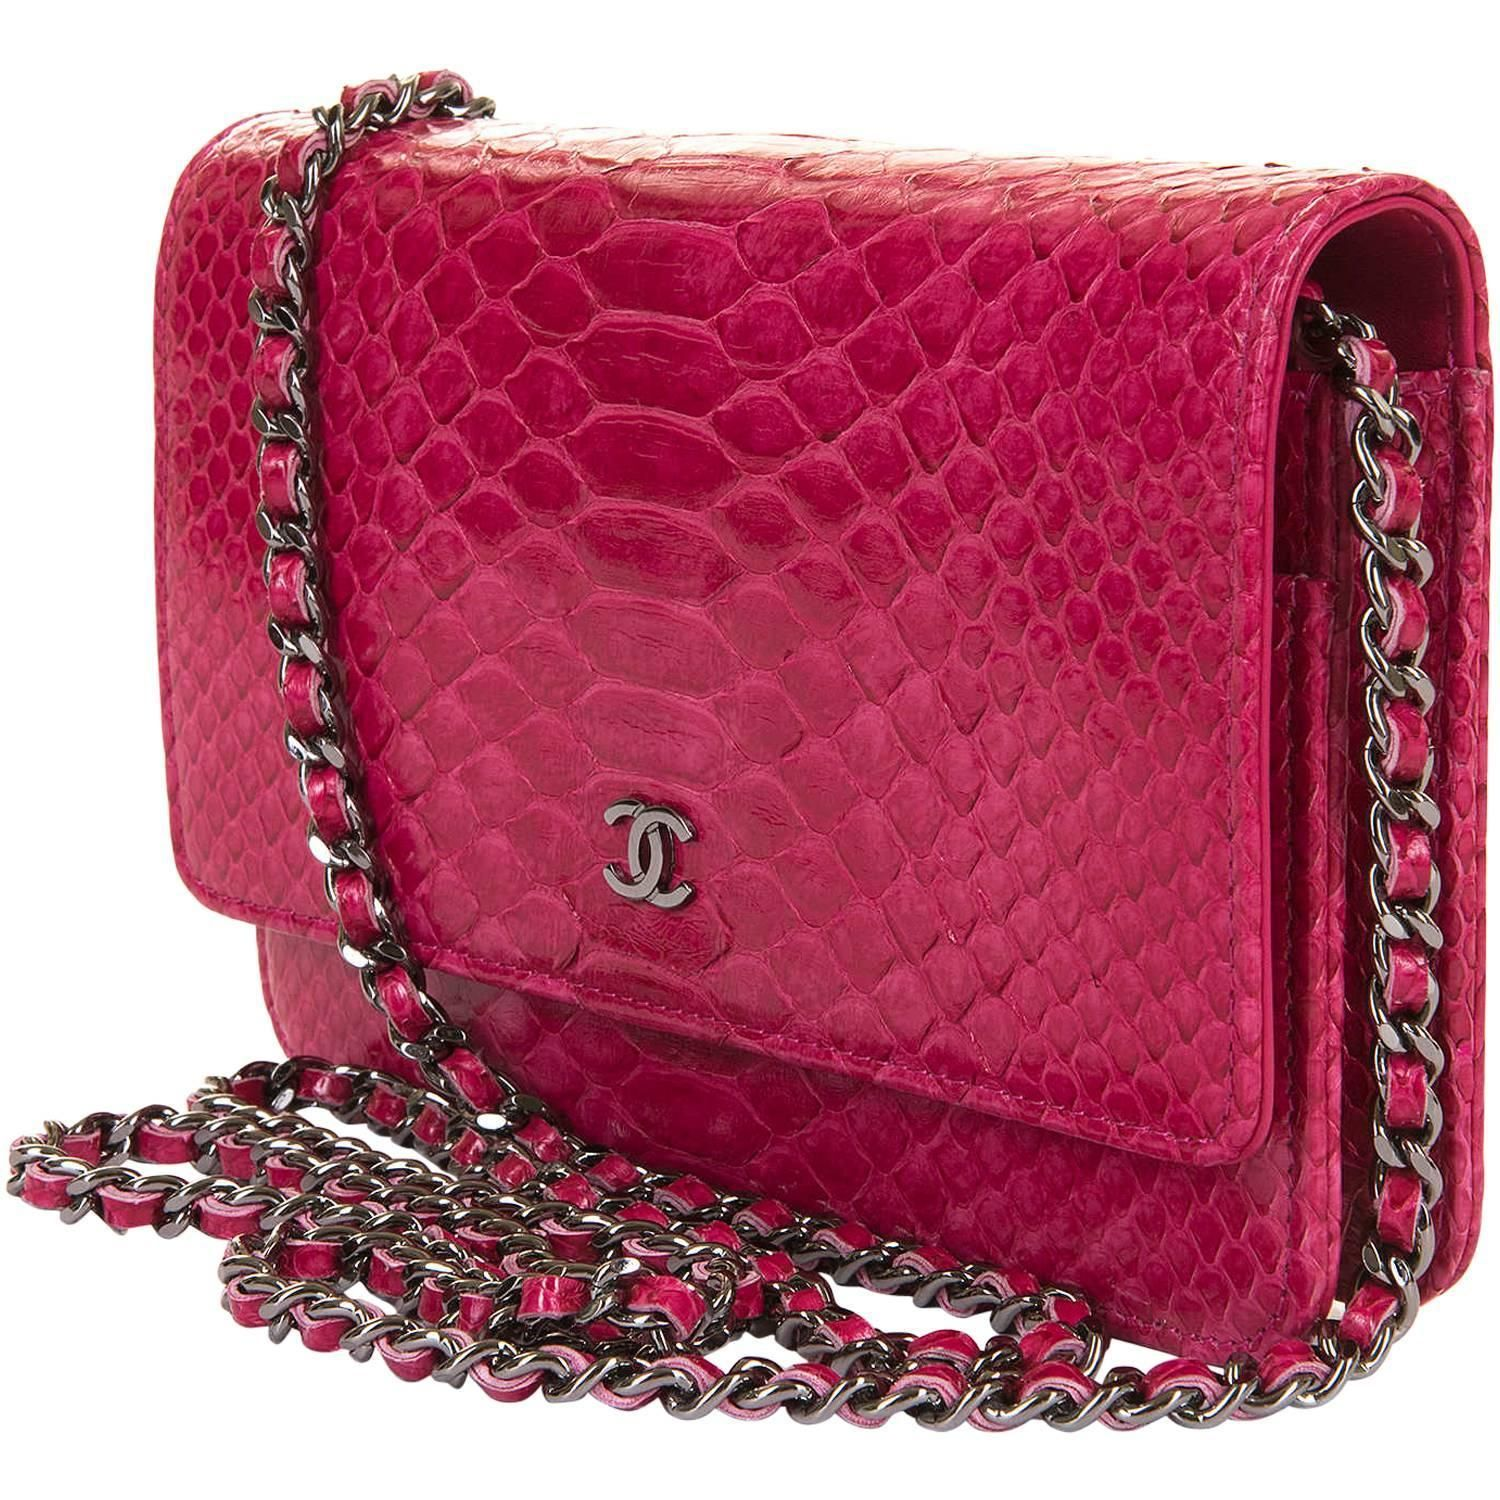 7cf55a9c475a SO SO RARE Chanel 'Tres Chic' WOC in Fushia Pink Python with SHW - Pristine